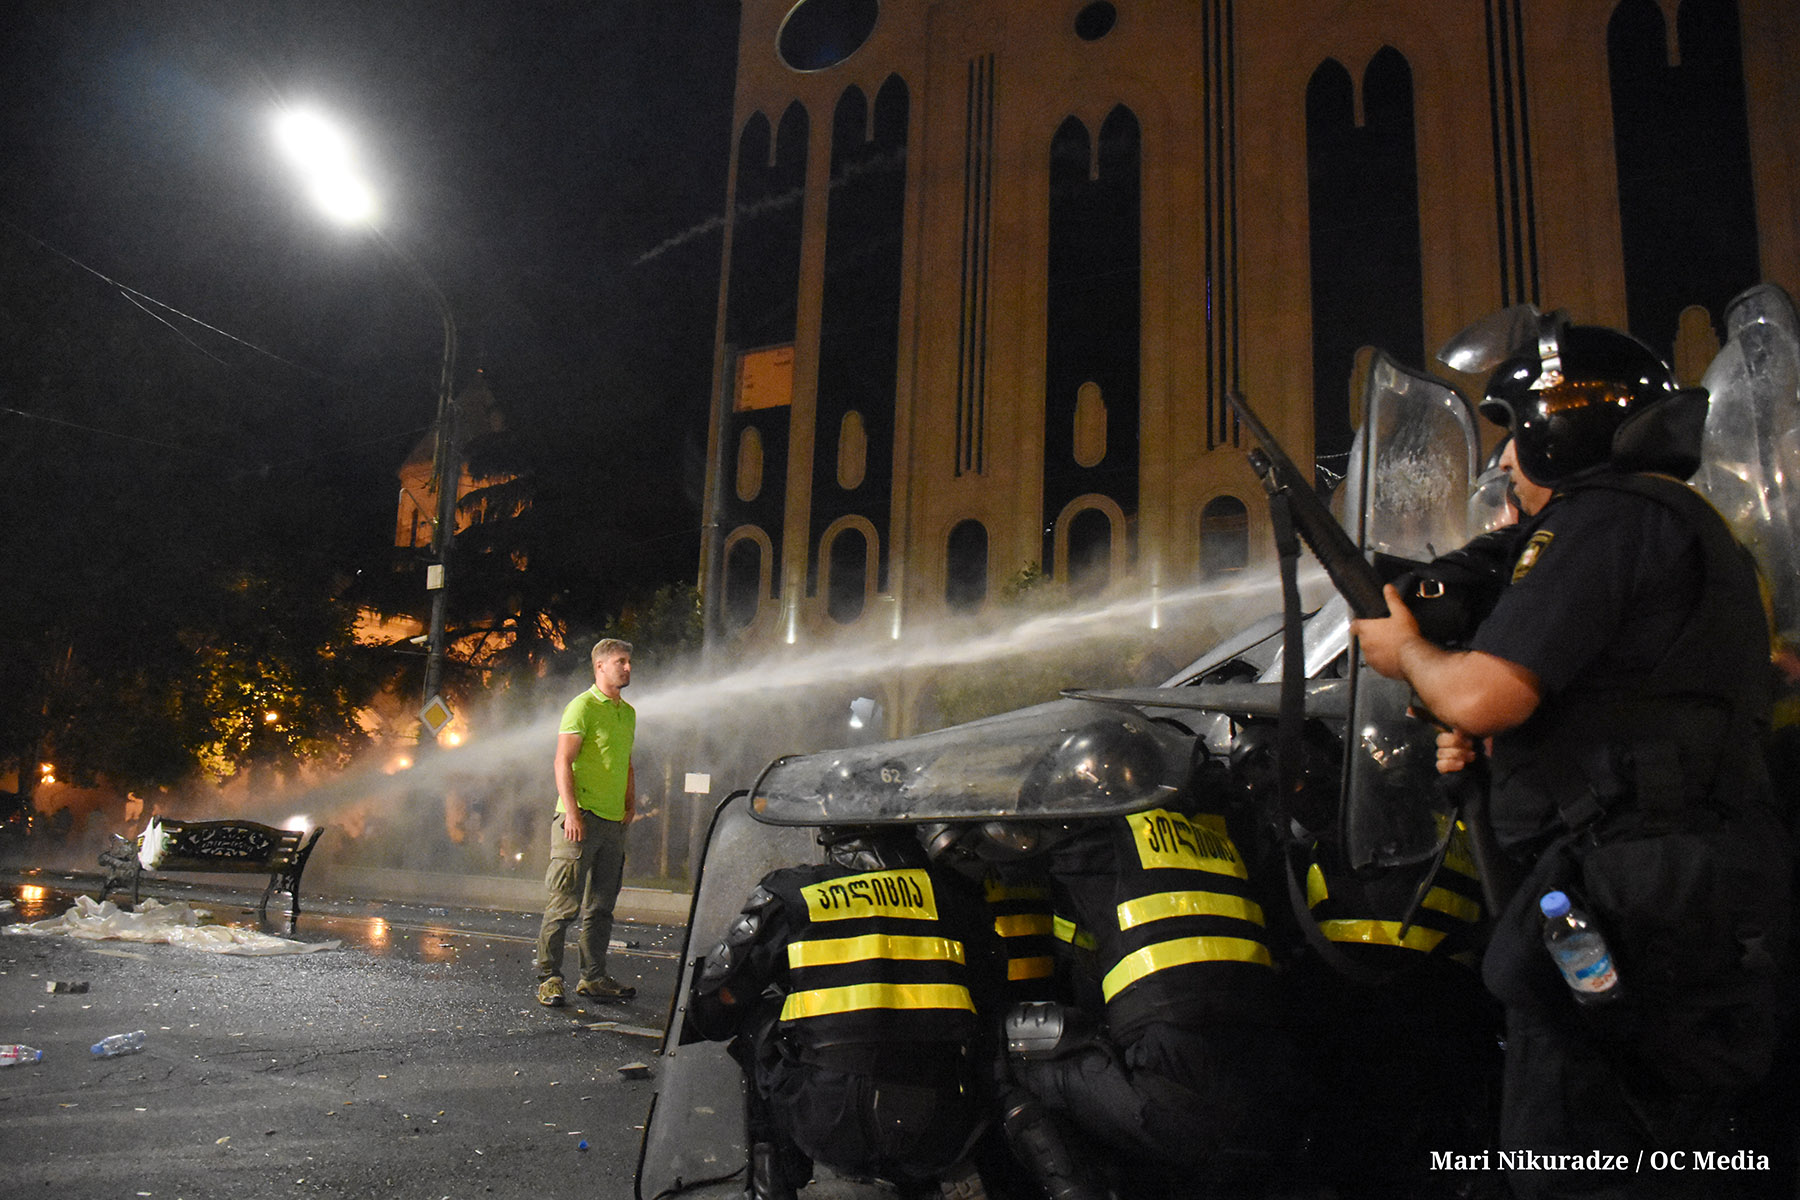 Police deployed a water cannon, tear gas, and rubber bullets against protesters. Photo:MariamNikuradze/OCMedia.